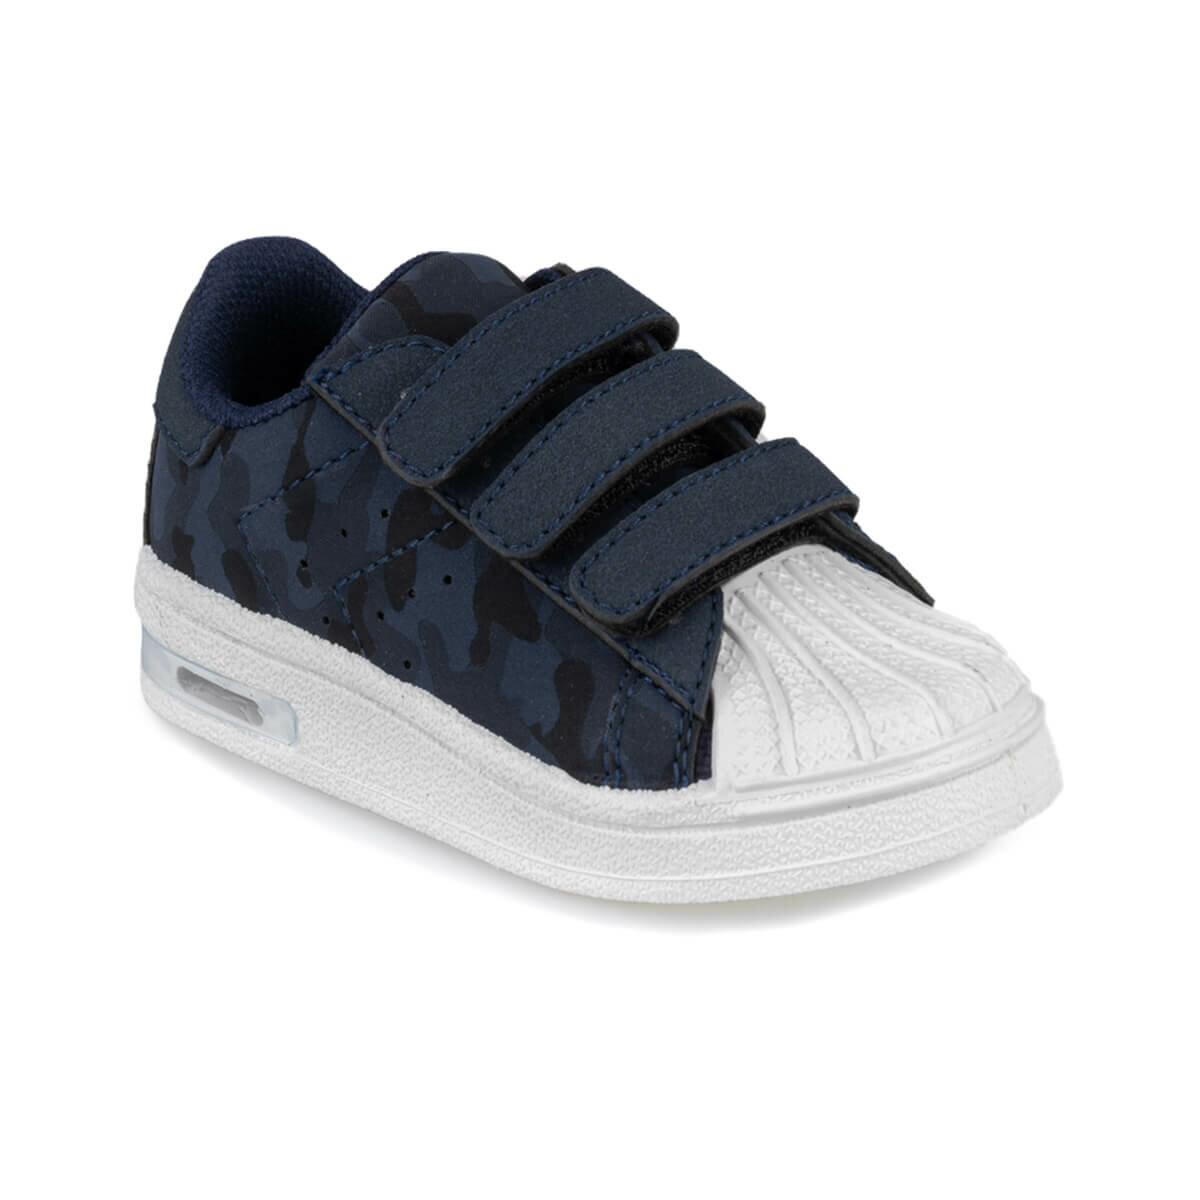 FLO MONTY CAMO 9PR Navy Blue Male Child Sneaker Shoes KINETIX